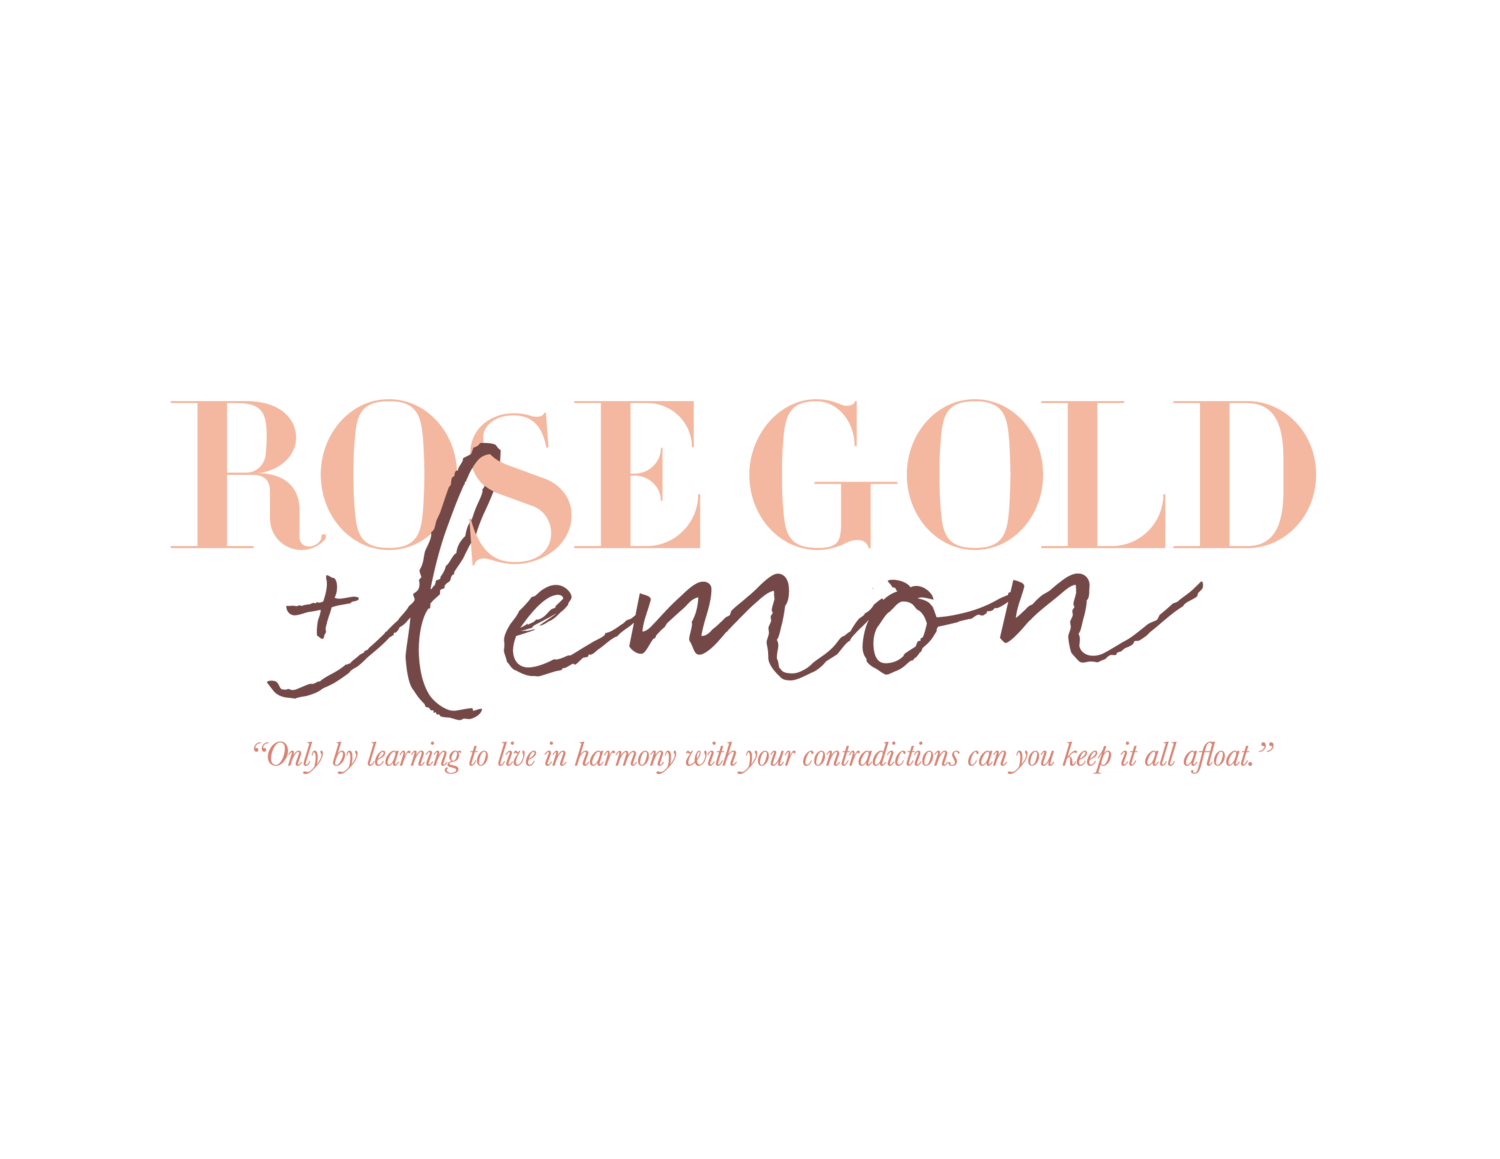 Rosegold and Lemon